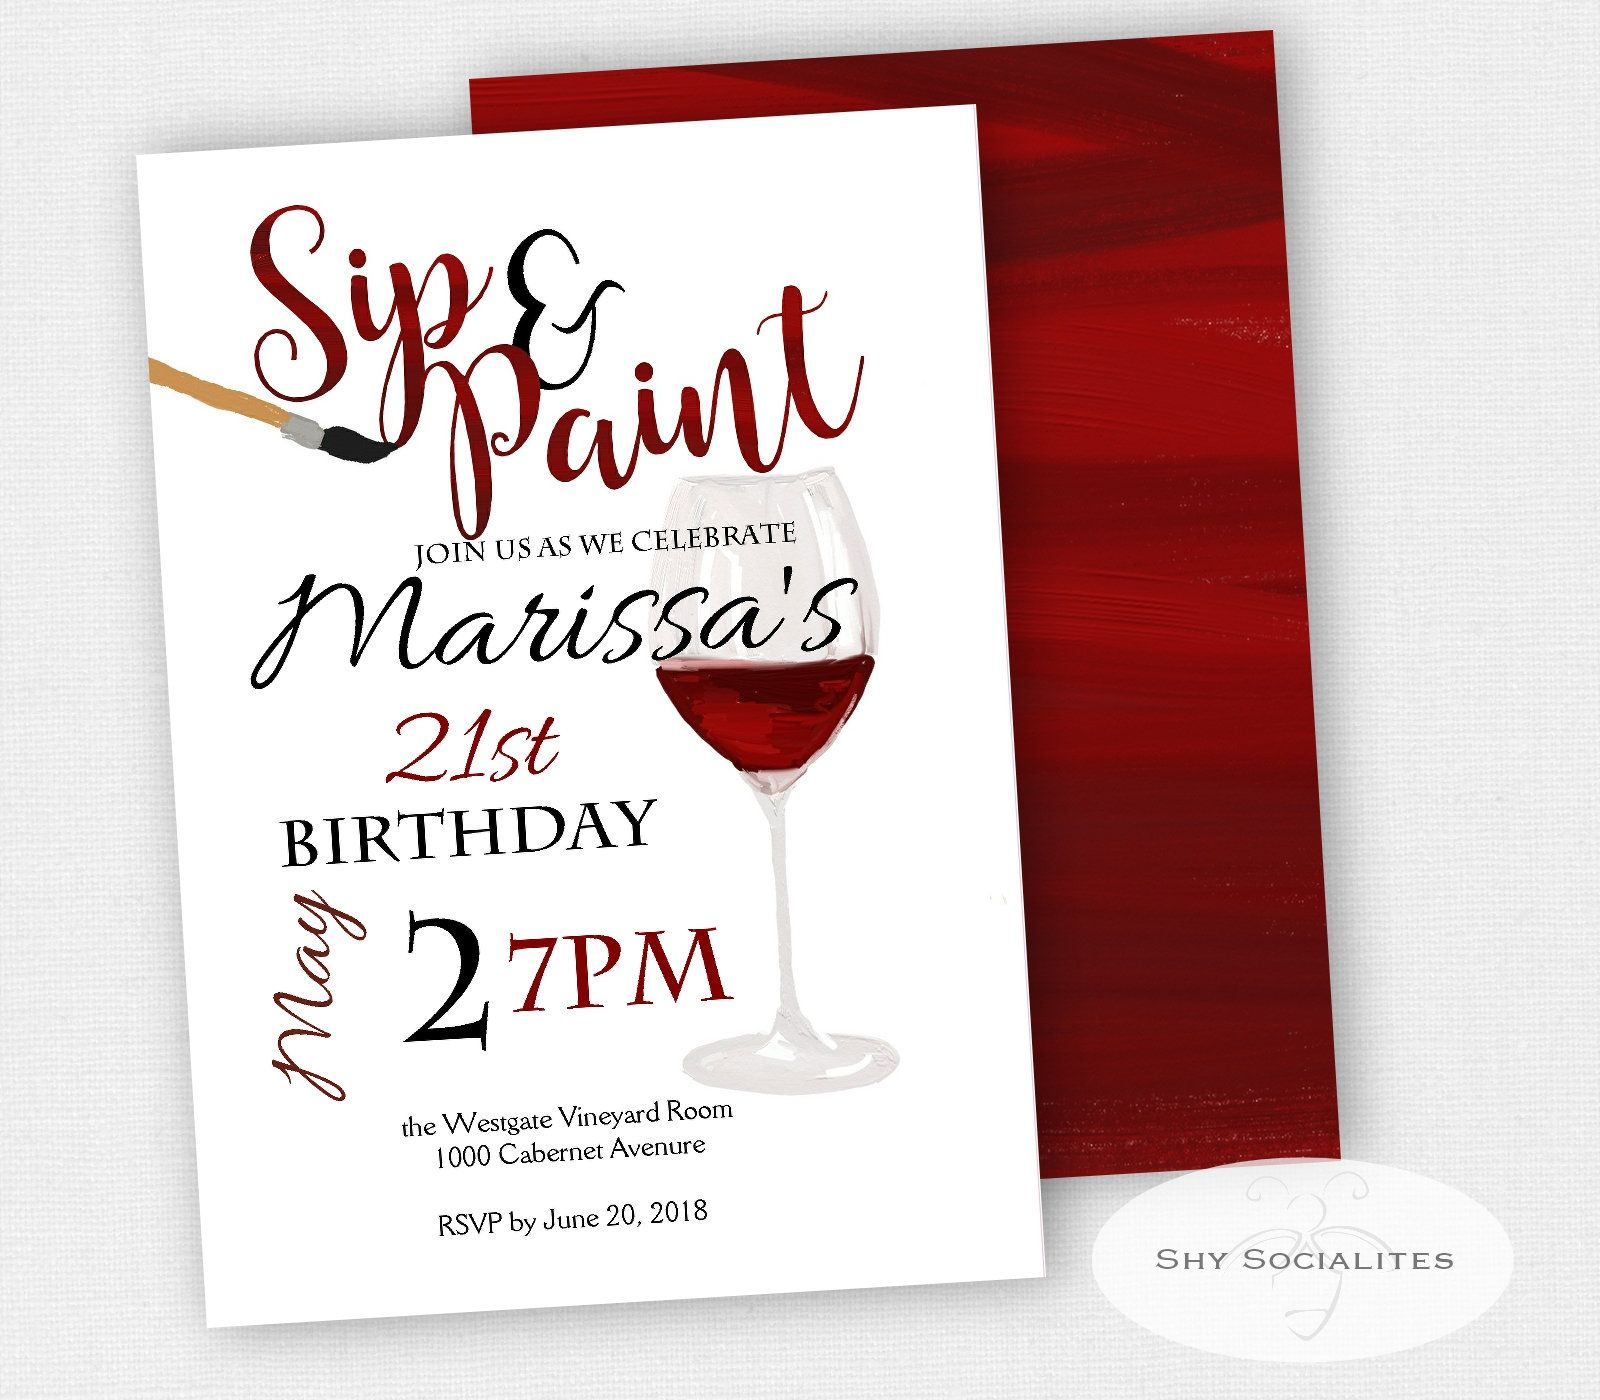 Sip And Paint Wine Invitation Bridal Shower Cocktail Party Holiday Party Wine Tasting Oil Painting Instant Download Editable Pdf In 2020 Wine Invitations Paint Party Invitations Painted Invitations